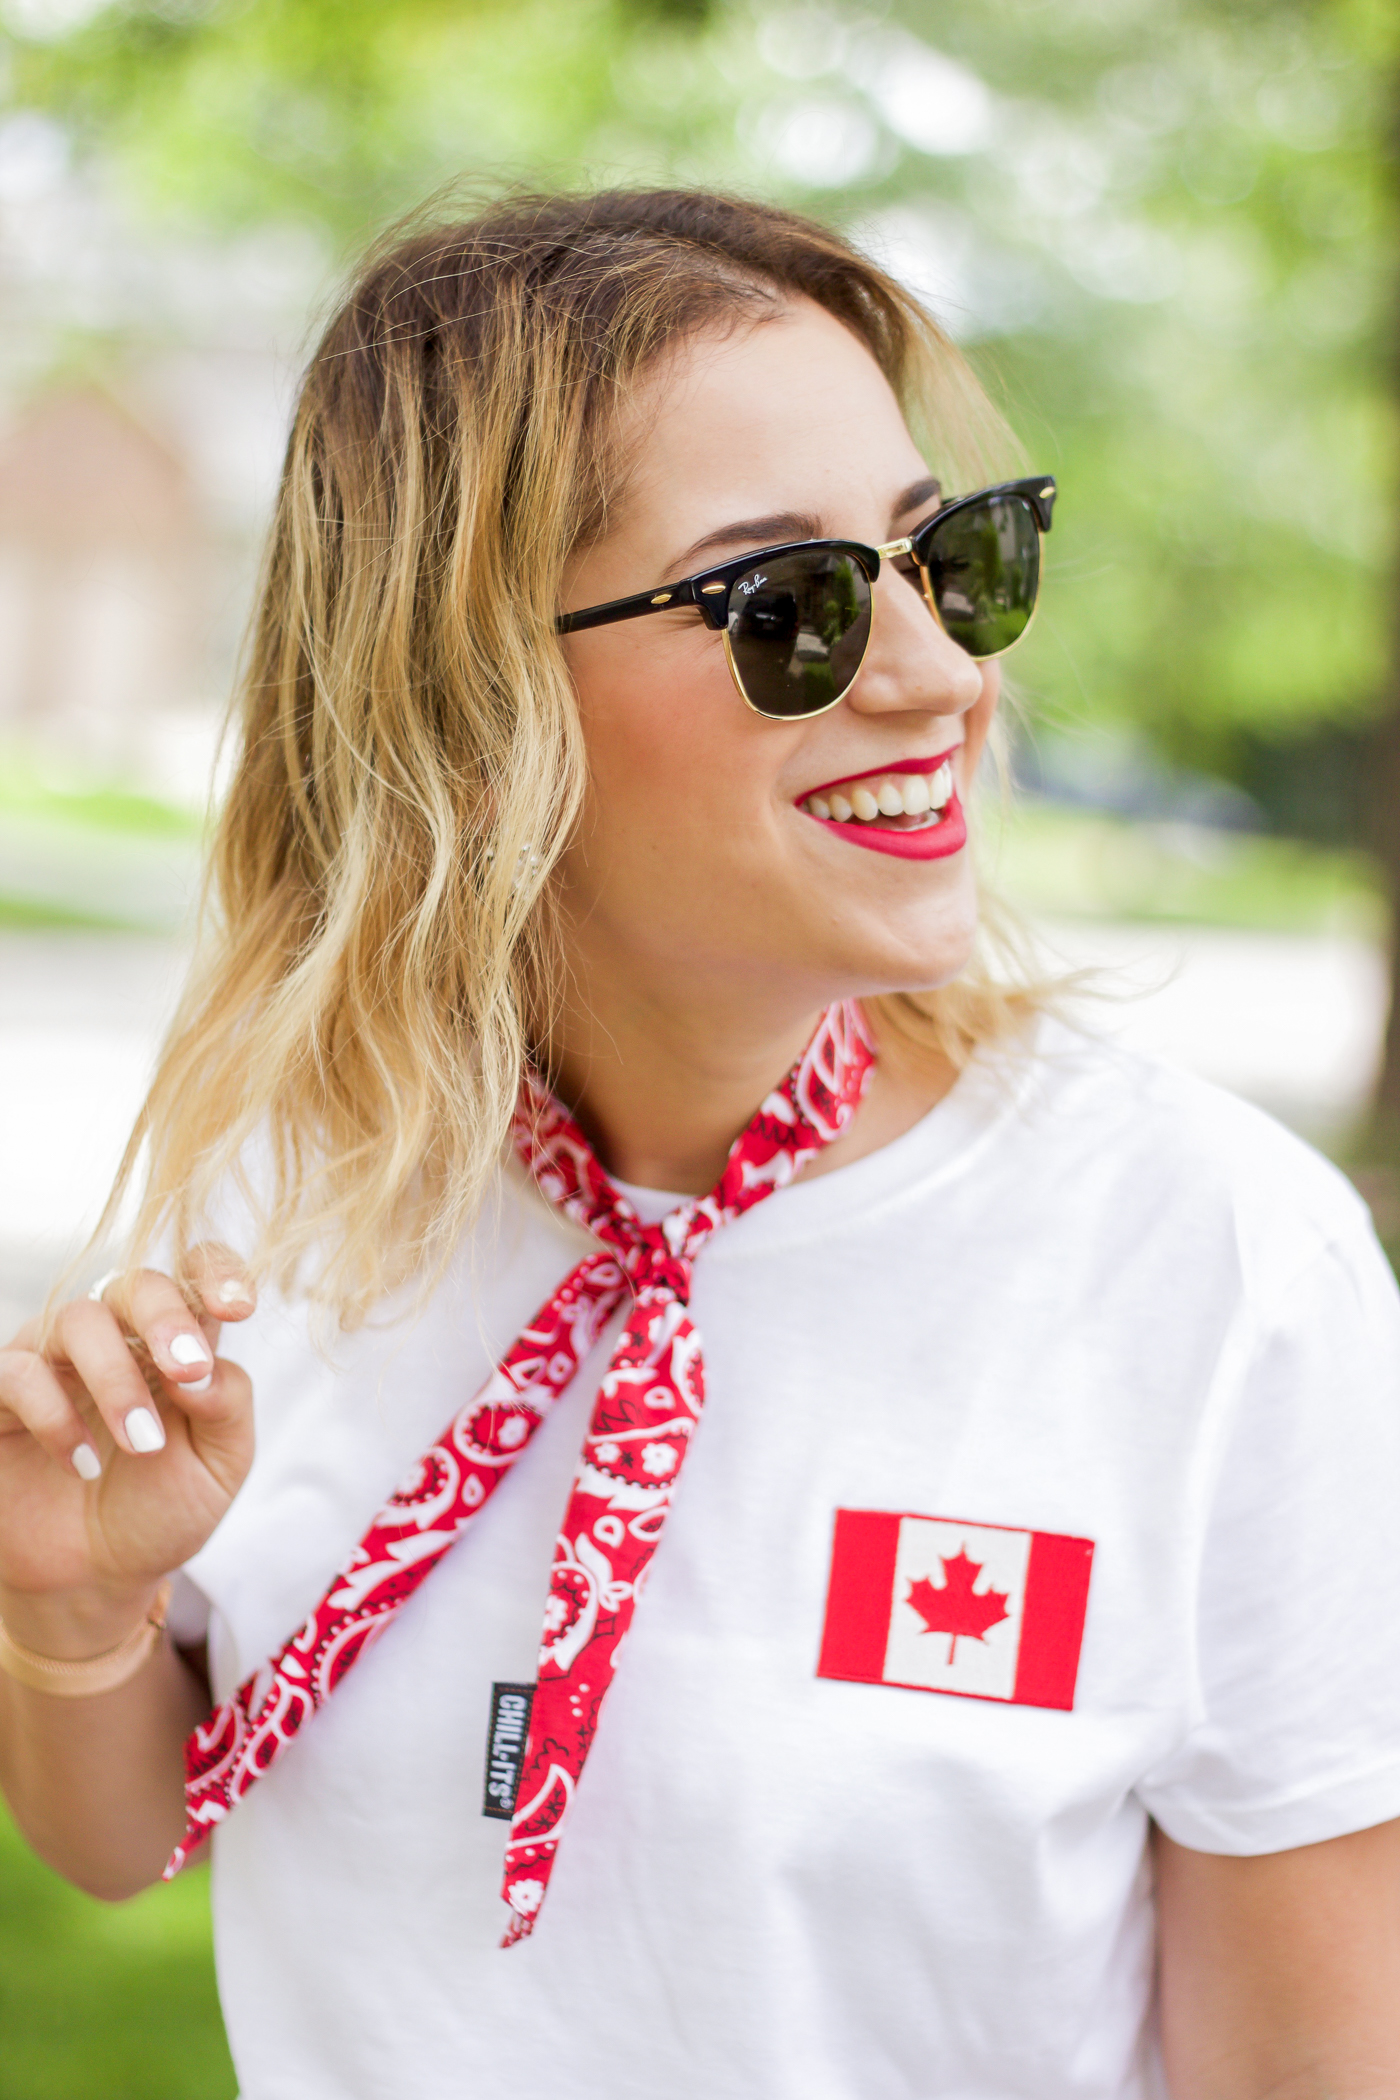 Canada day fashion and accessories from Amazon.ca are perfect for #Canada150